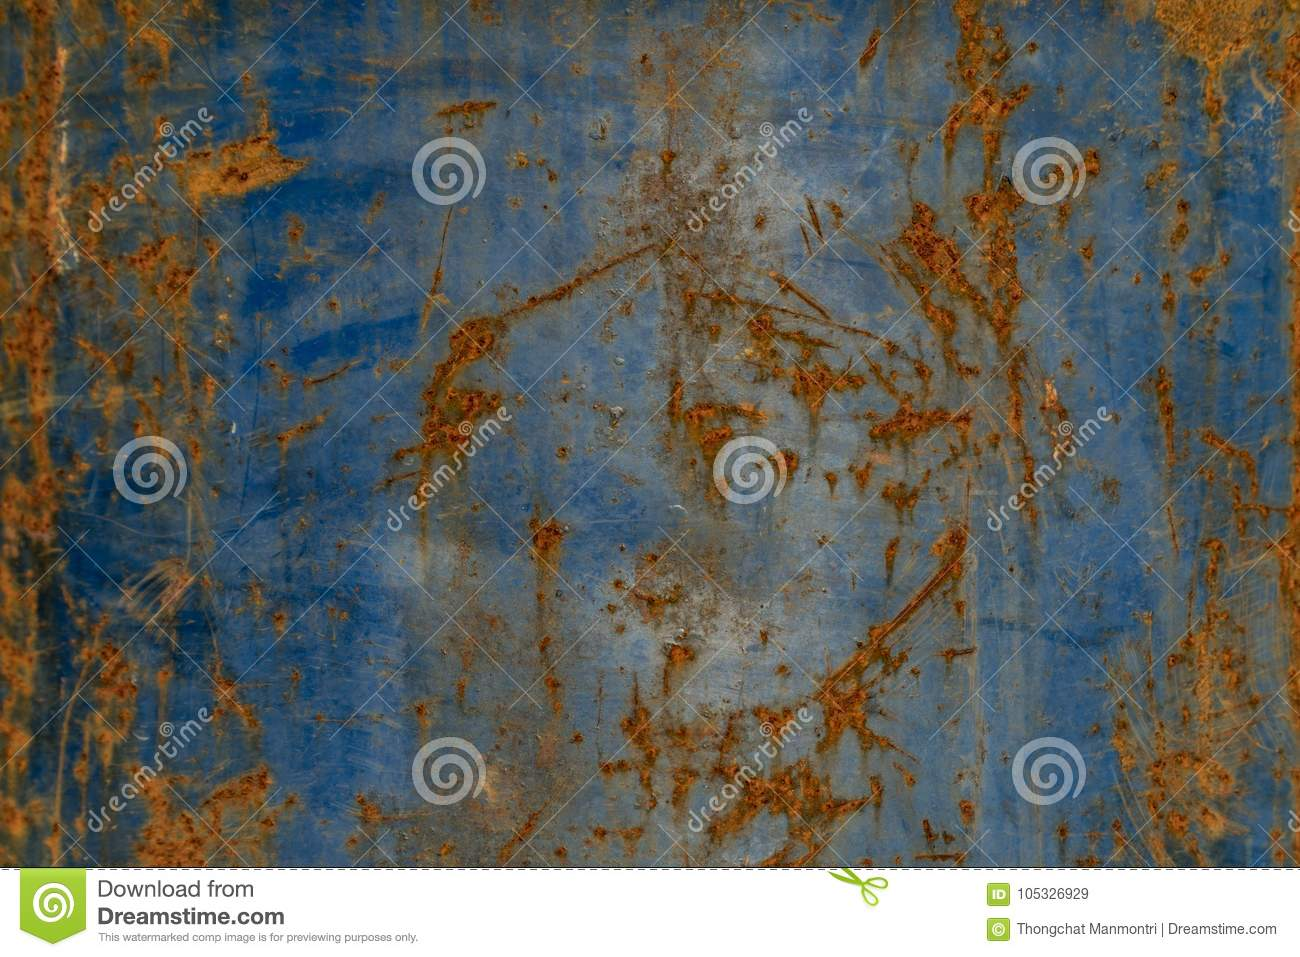 Rust On Old Steel  Blue Steel Oxide Texture Stock Image - Image of